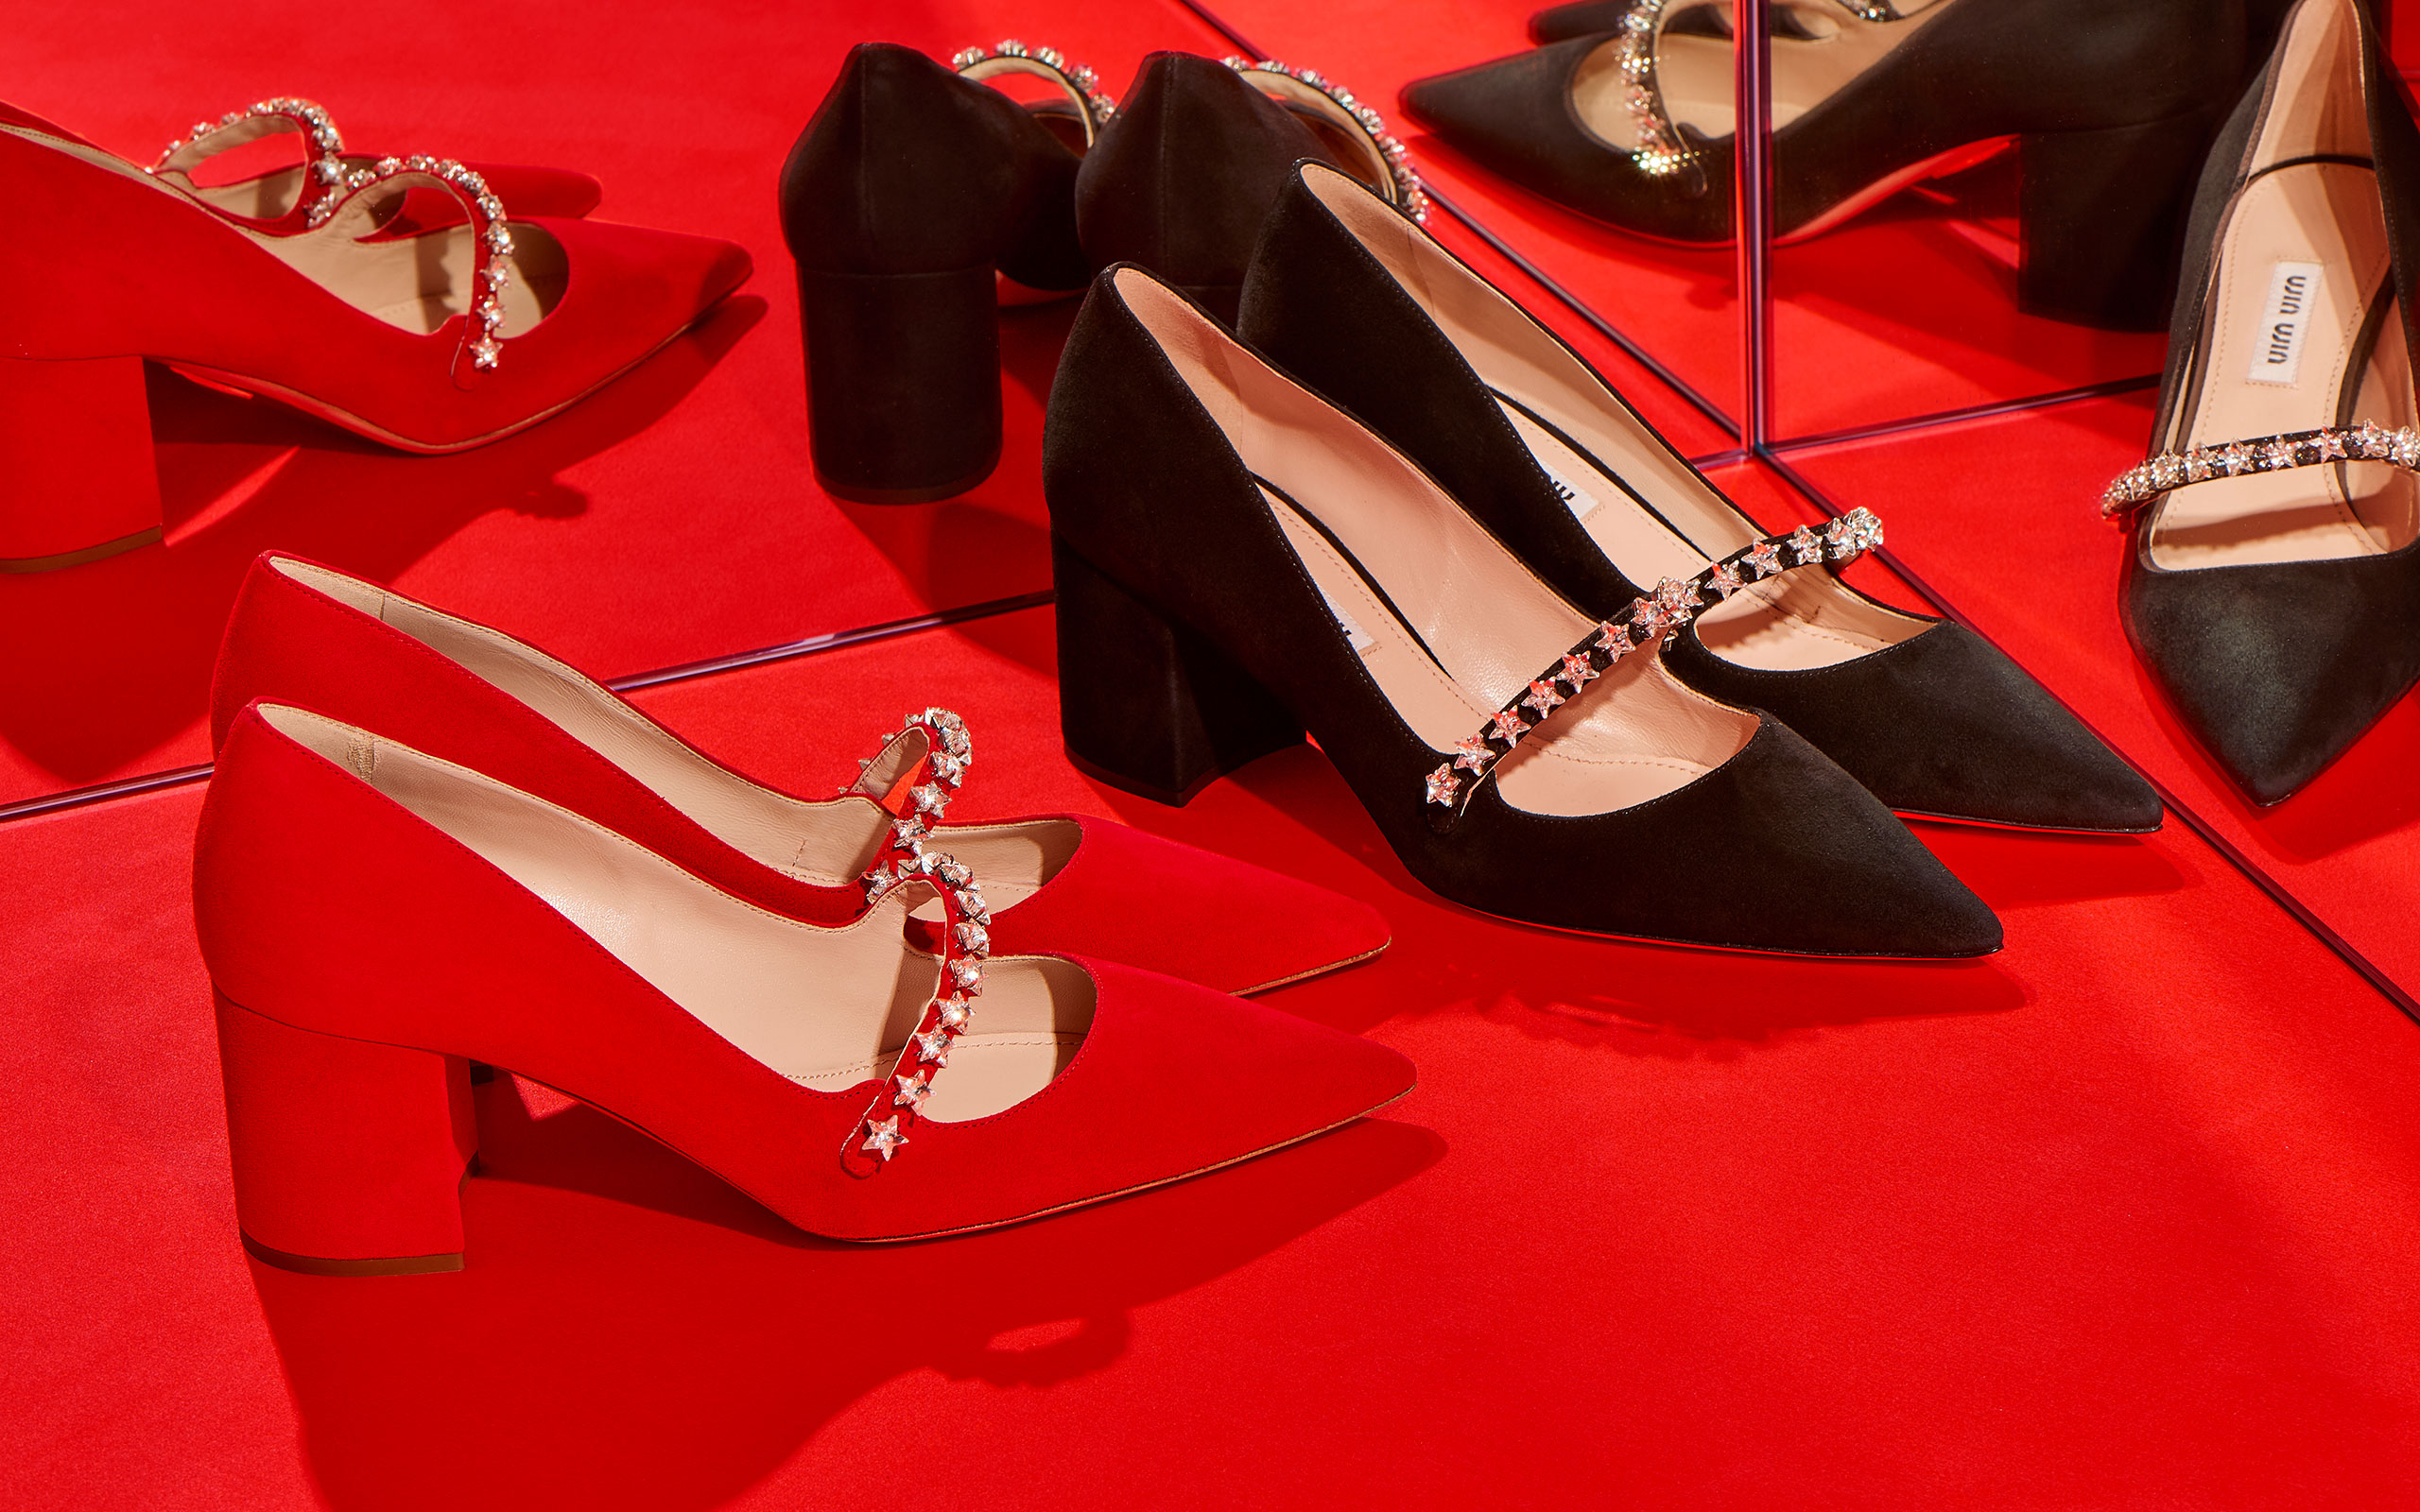 MIU MIU Opens Pop-Up Store Featuring Shoes Collection